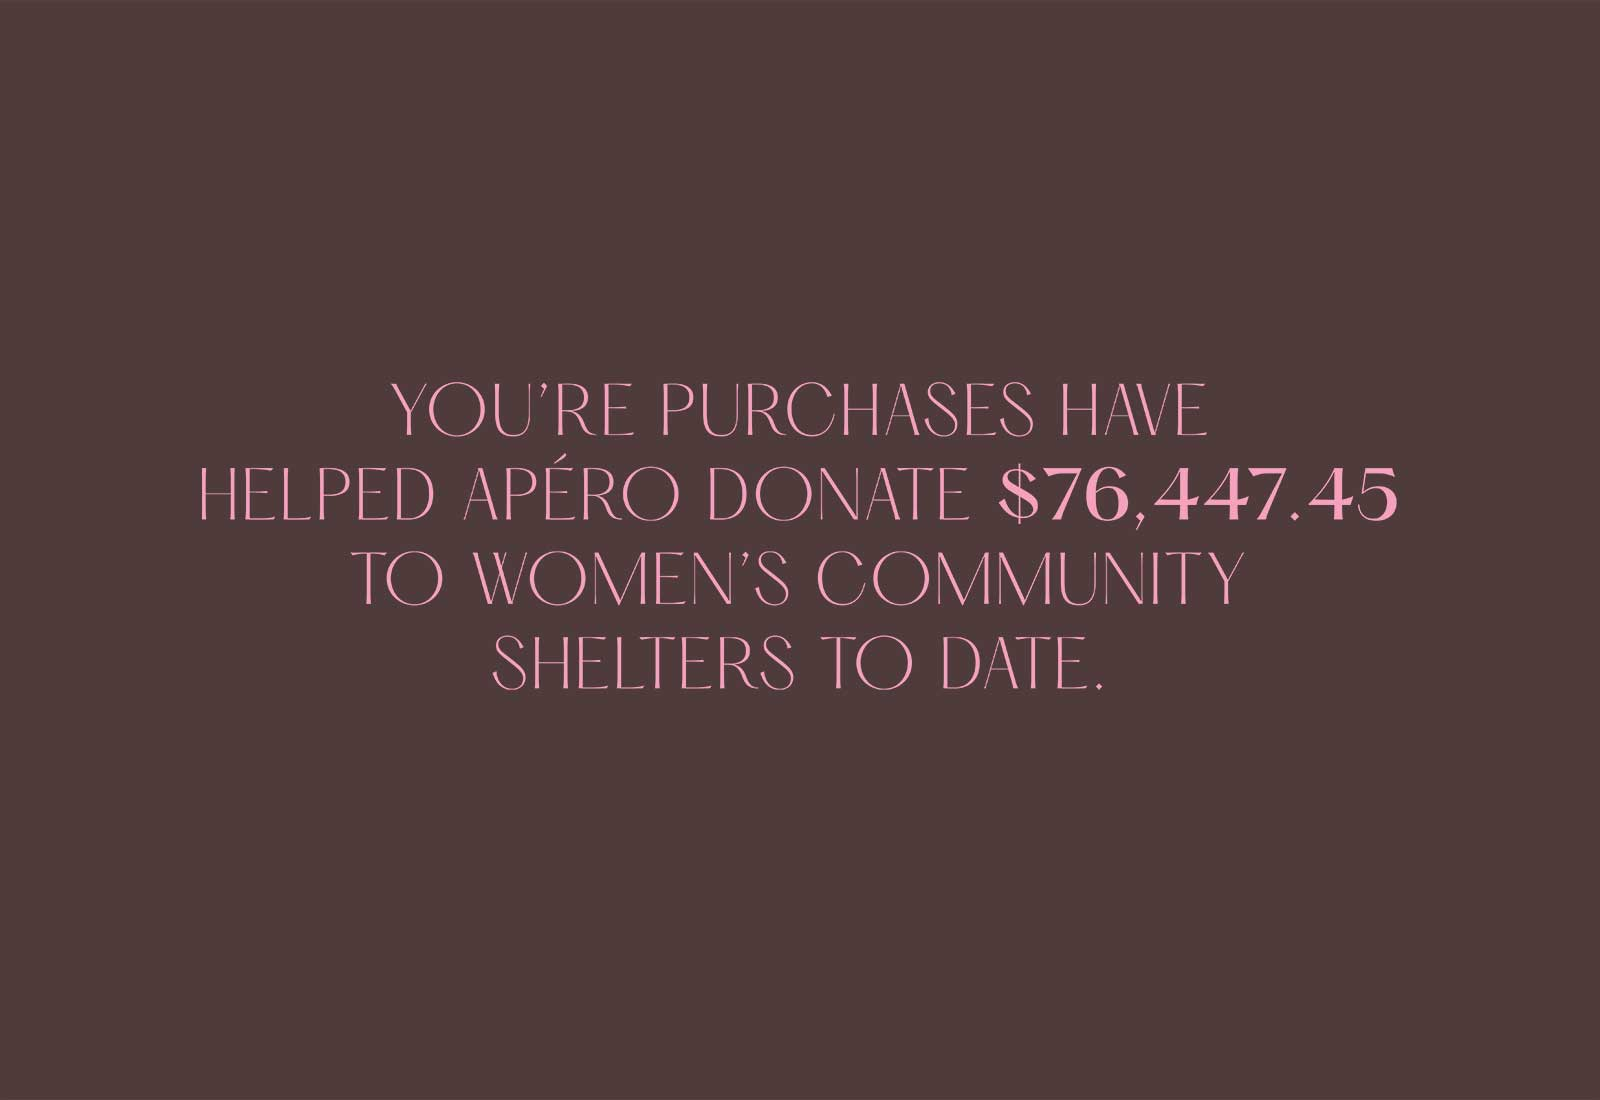 Women's Community Shelters donation